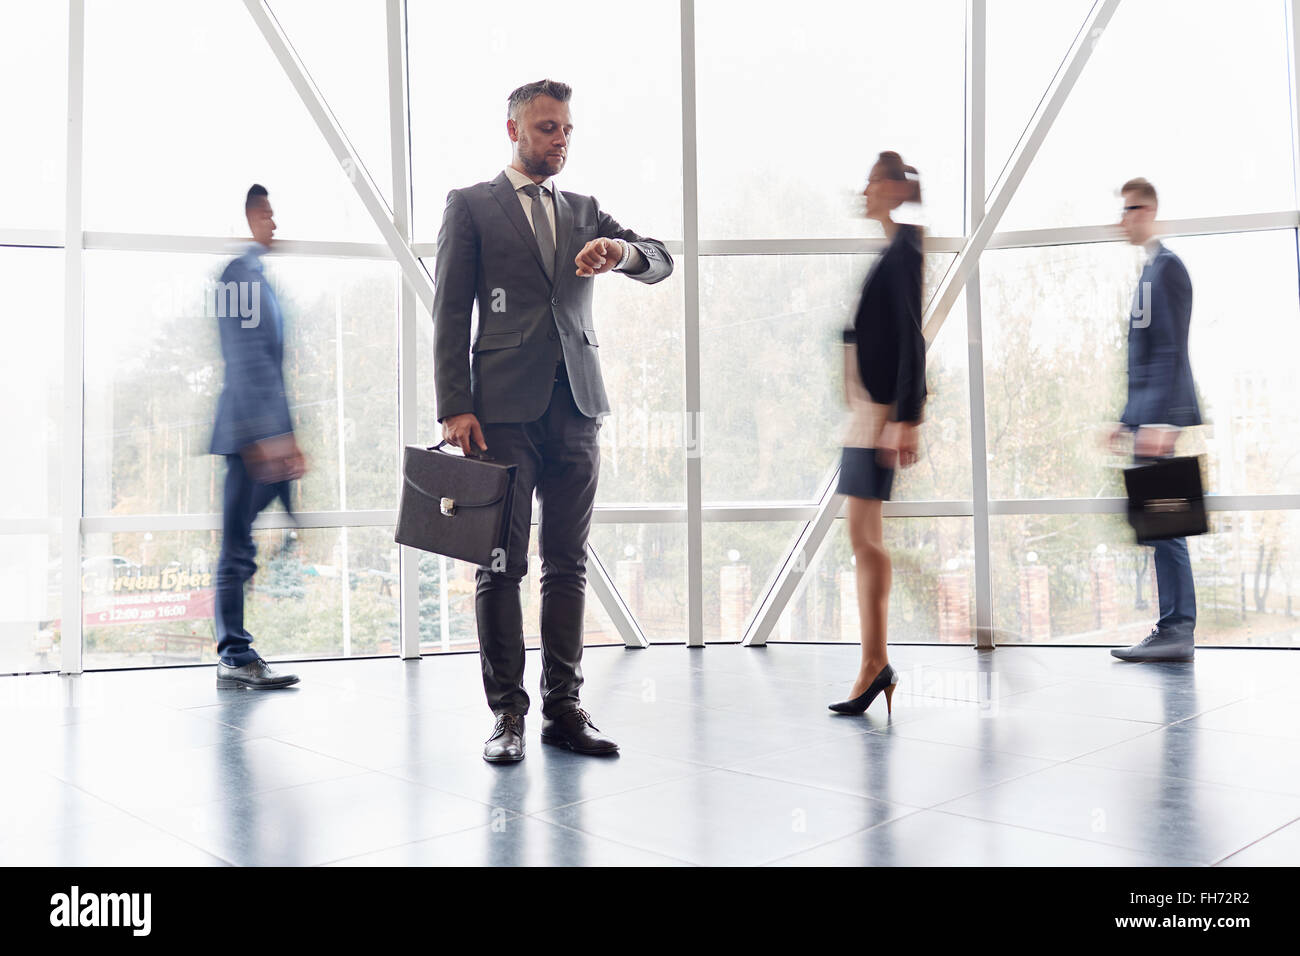 Serious businessman with briefcase looking at watch with hurrying people near by - Stock Image